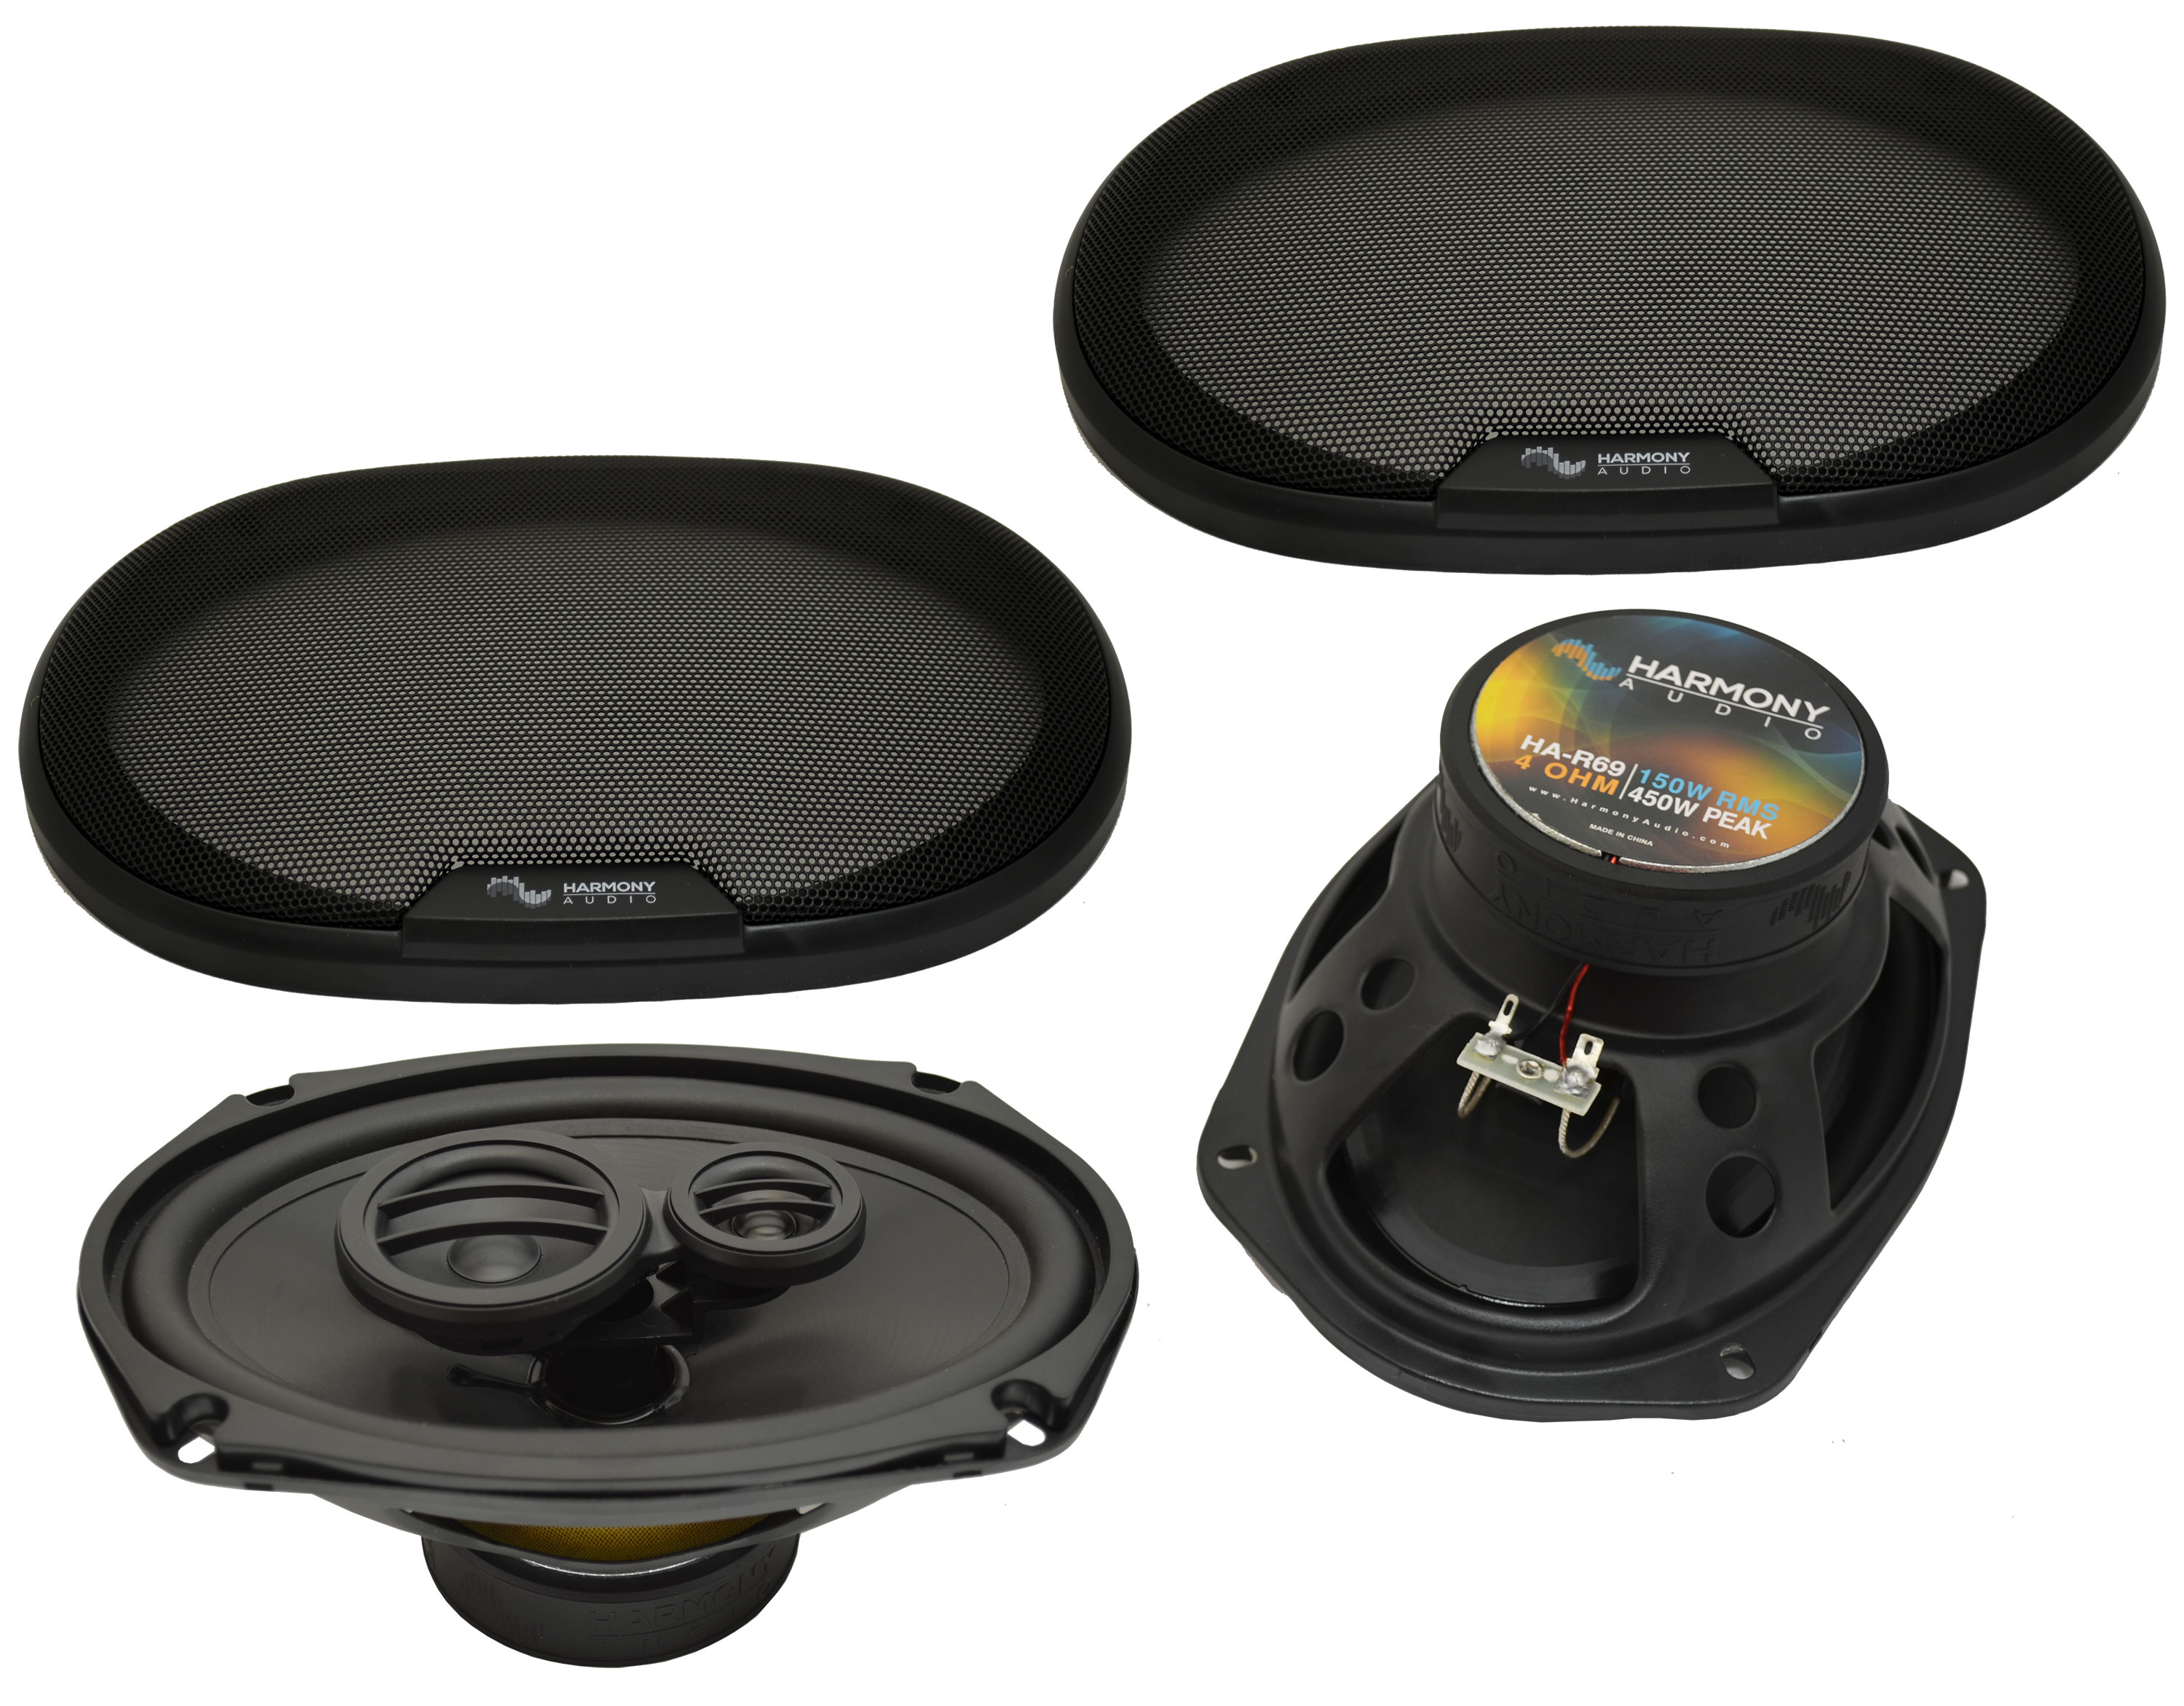 Harmony Audio Compatible With 2008-09 Pontiac G8 HA-R69 New Rear Deck Speaker Replacement Upgrade